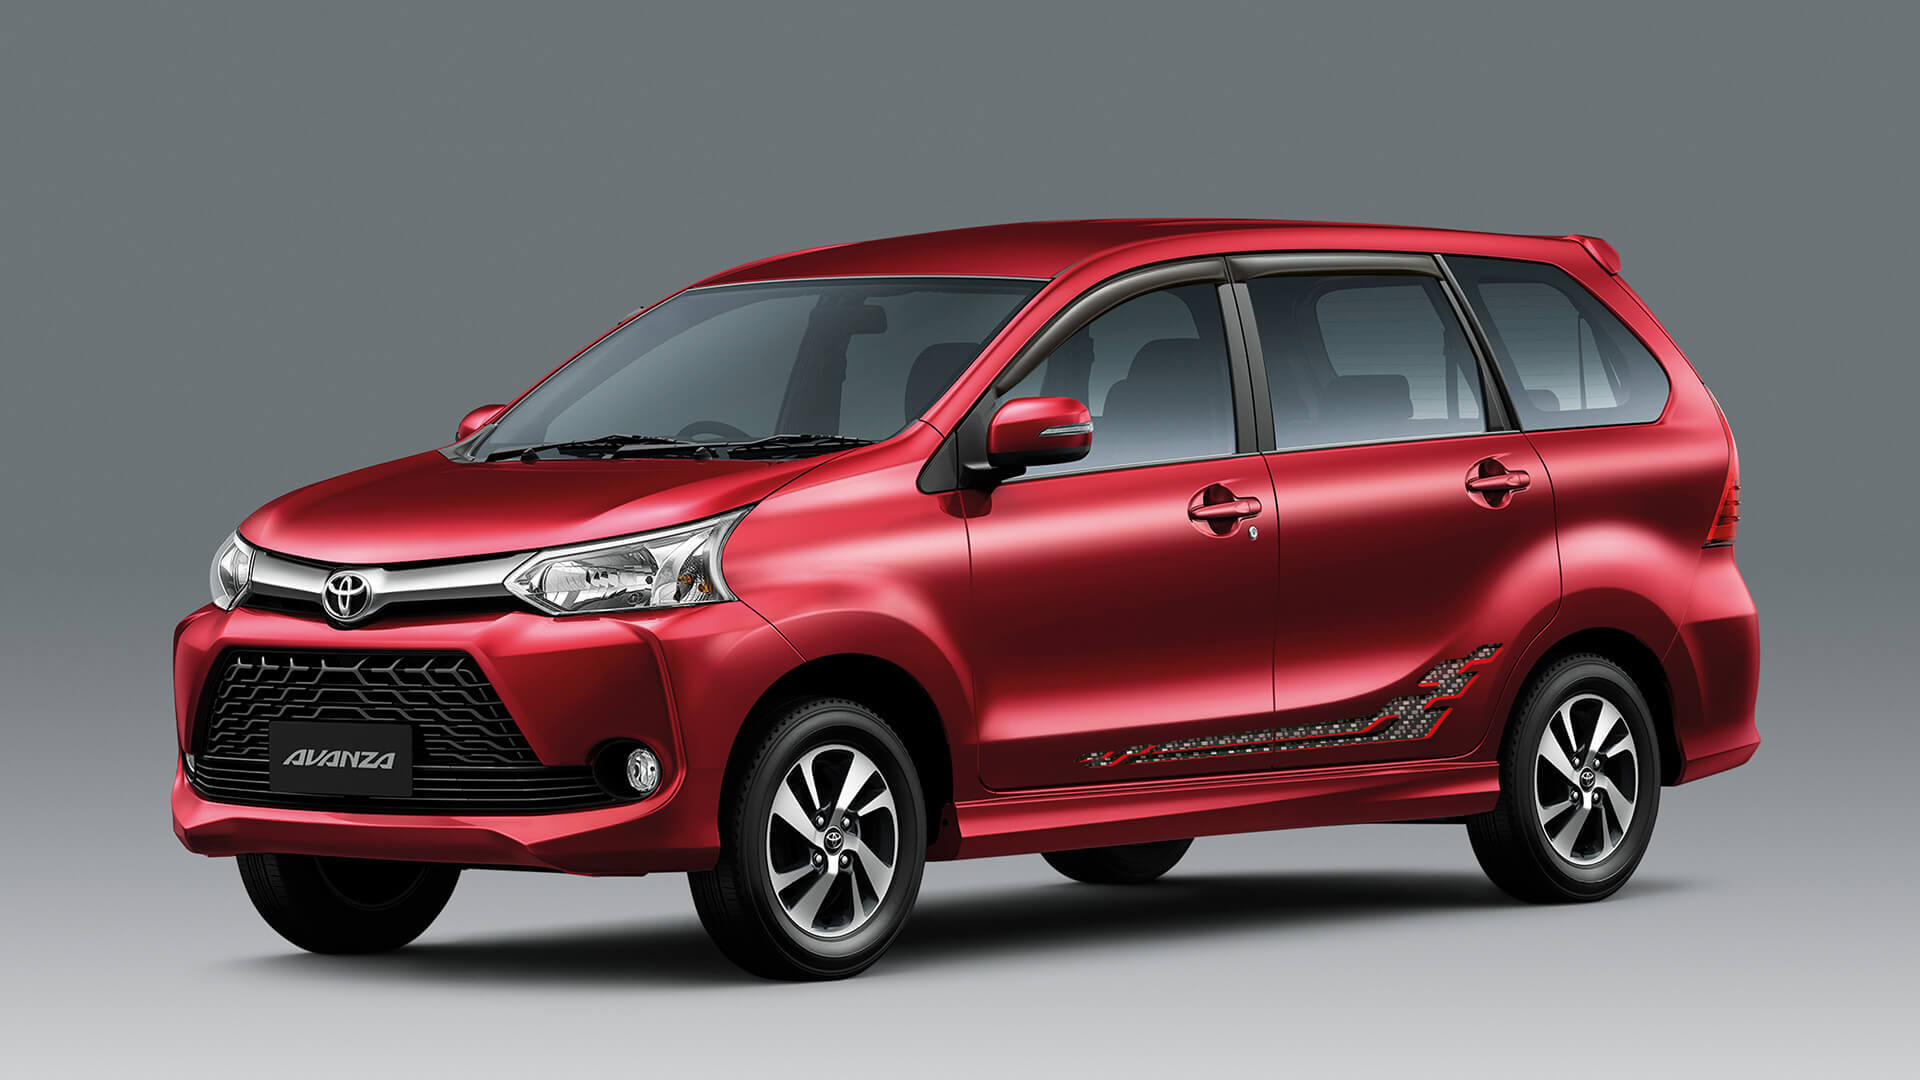 grand new veloz 1.5 mt 2018 avanza e toyota malaysia photos